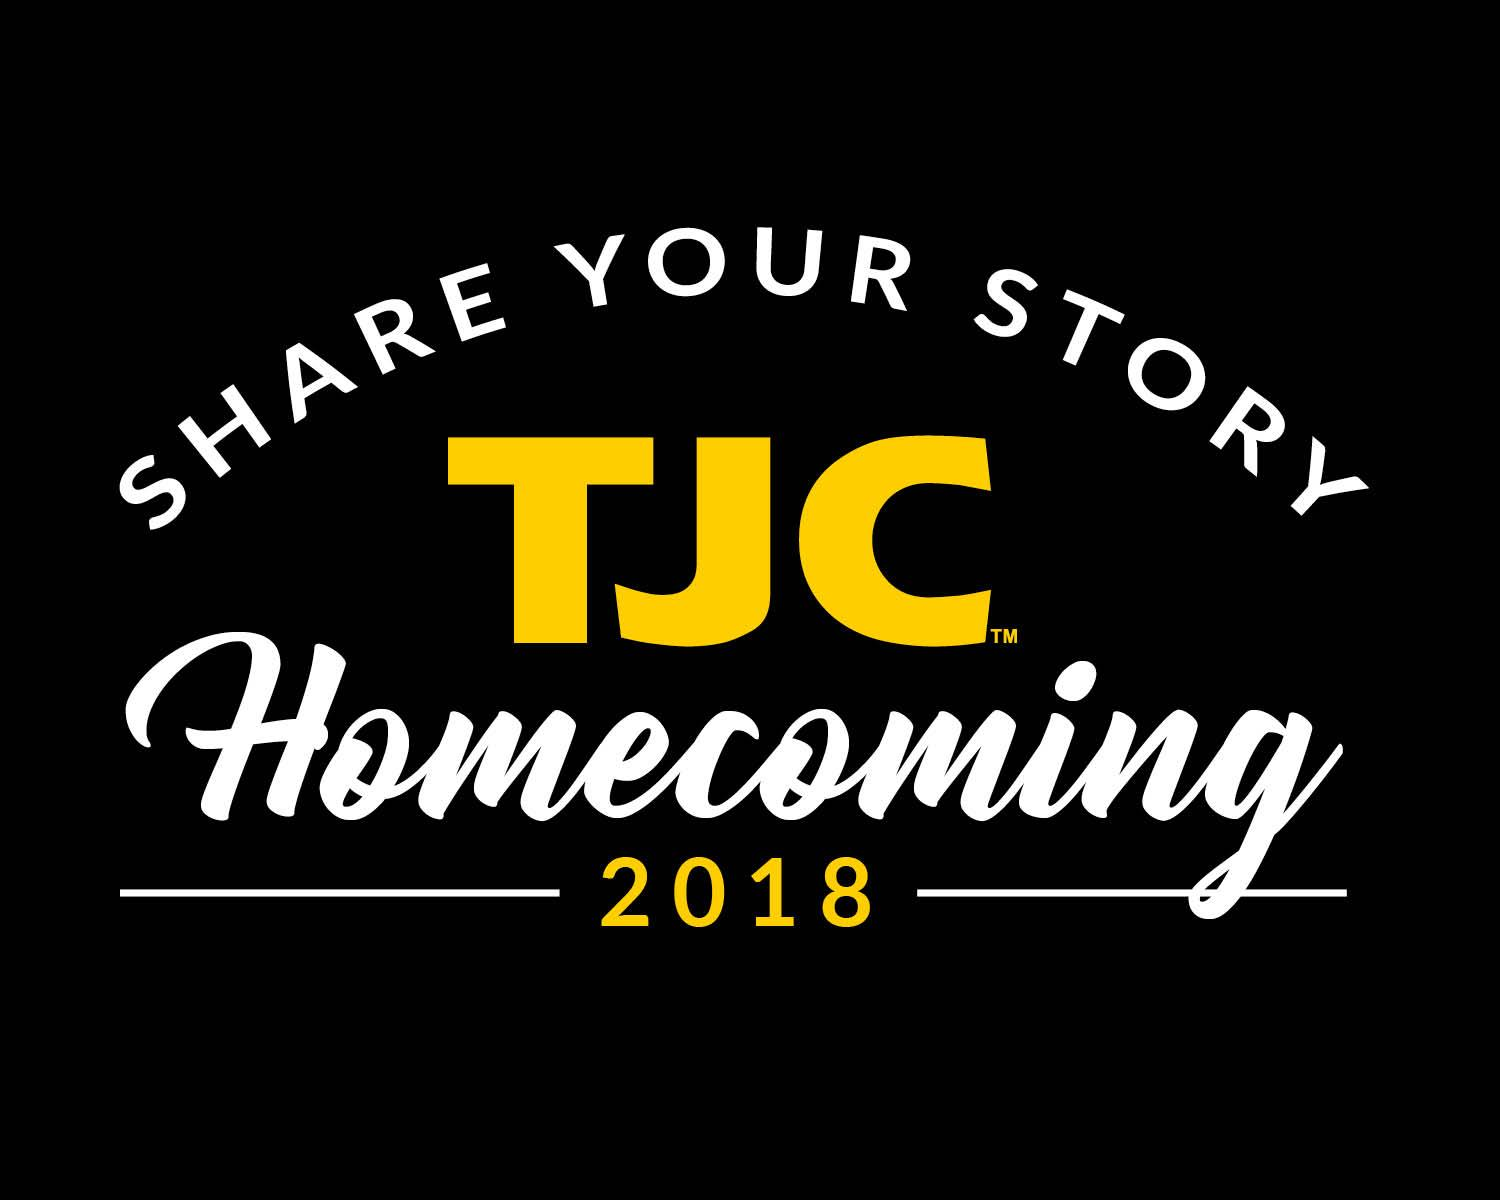 TJC homecoming